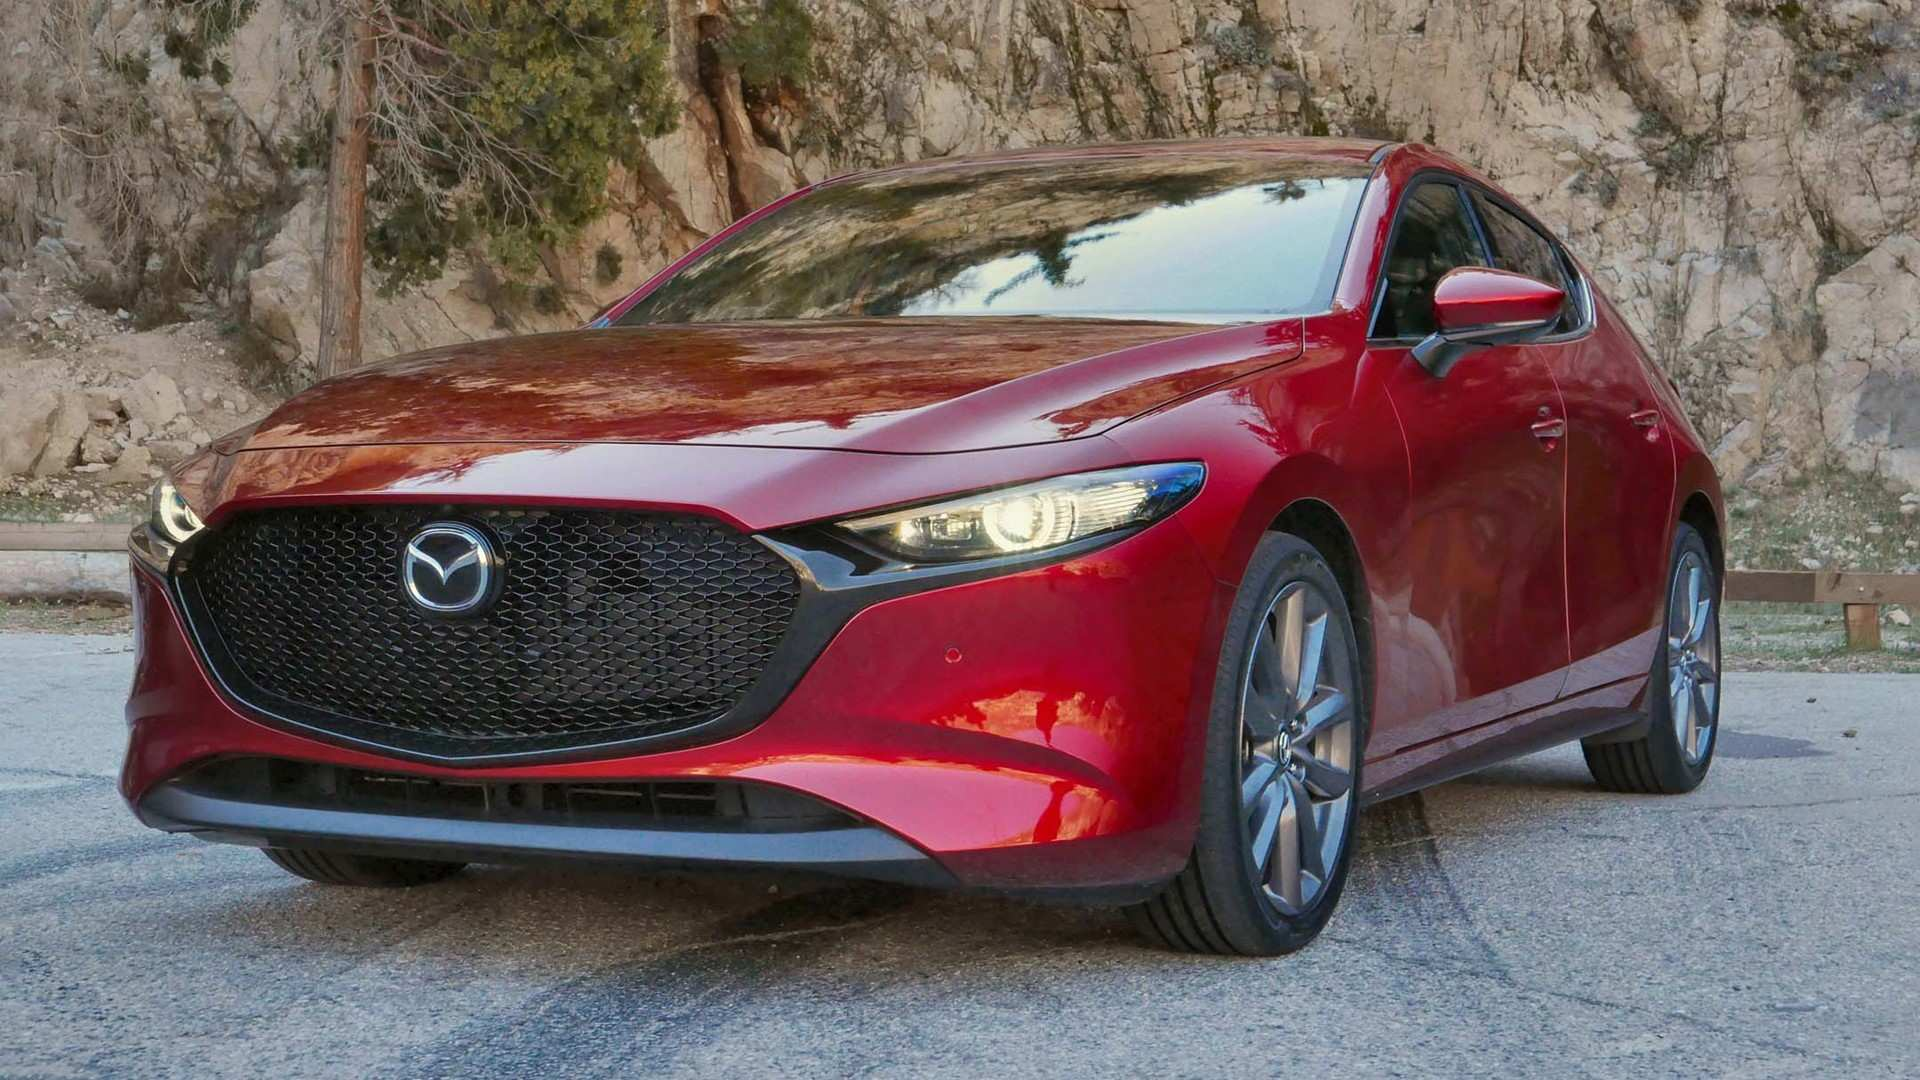 45 Gallery of When Does The 2020 Mazda 3 Come Out History with When Does The 2020 Mazda 3 Come Out